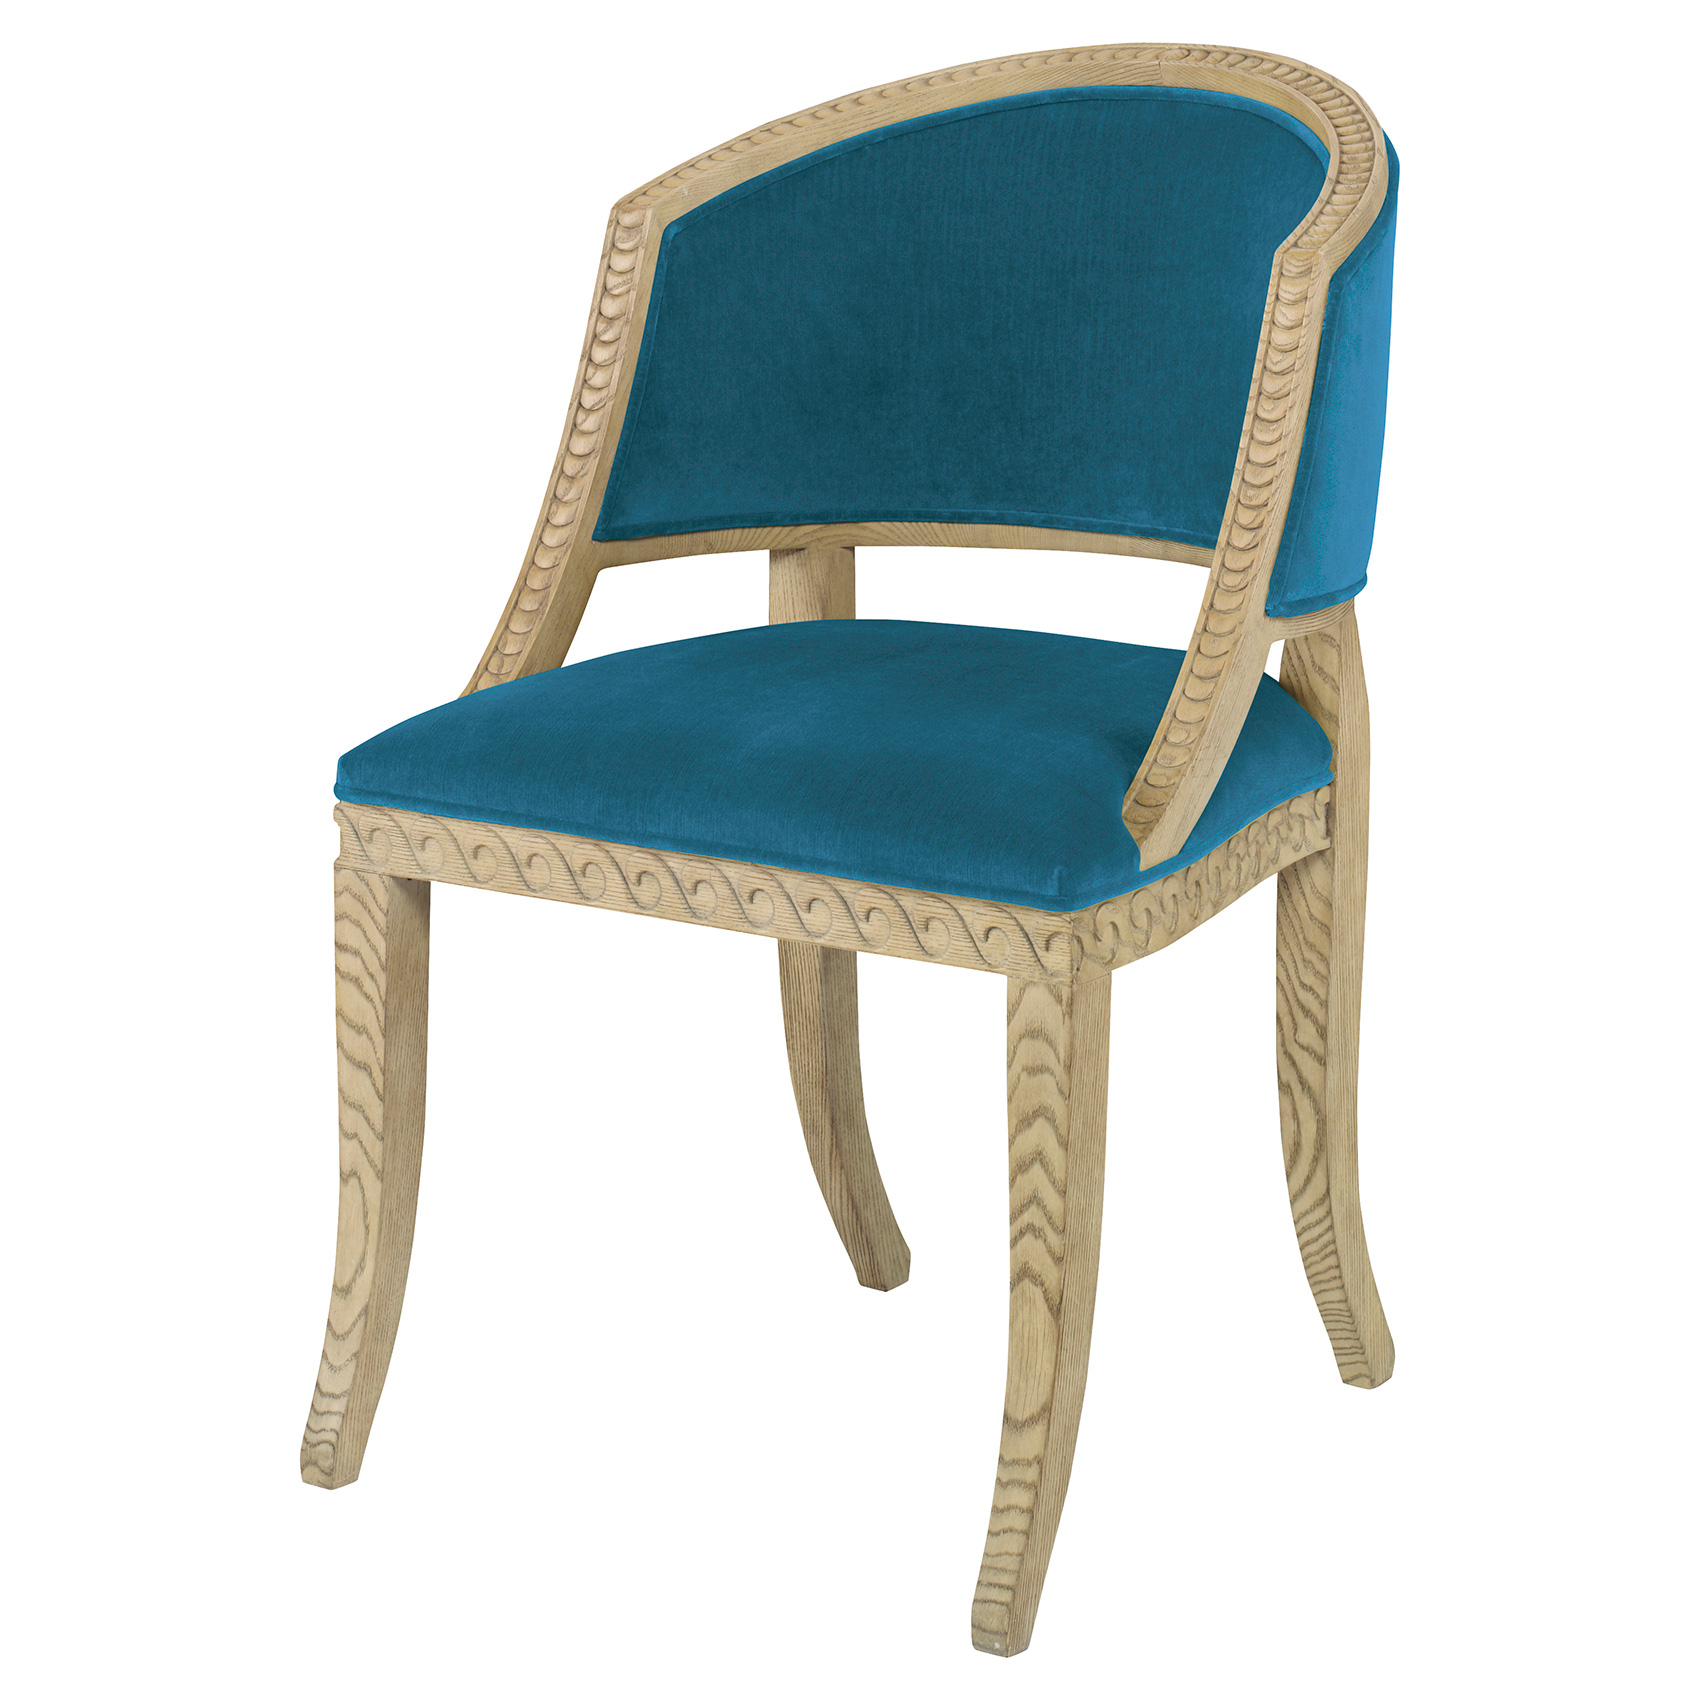 Augusta Regency Ash Wave Chair - Prussian Teal Velvet